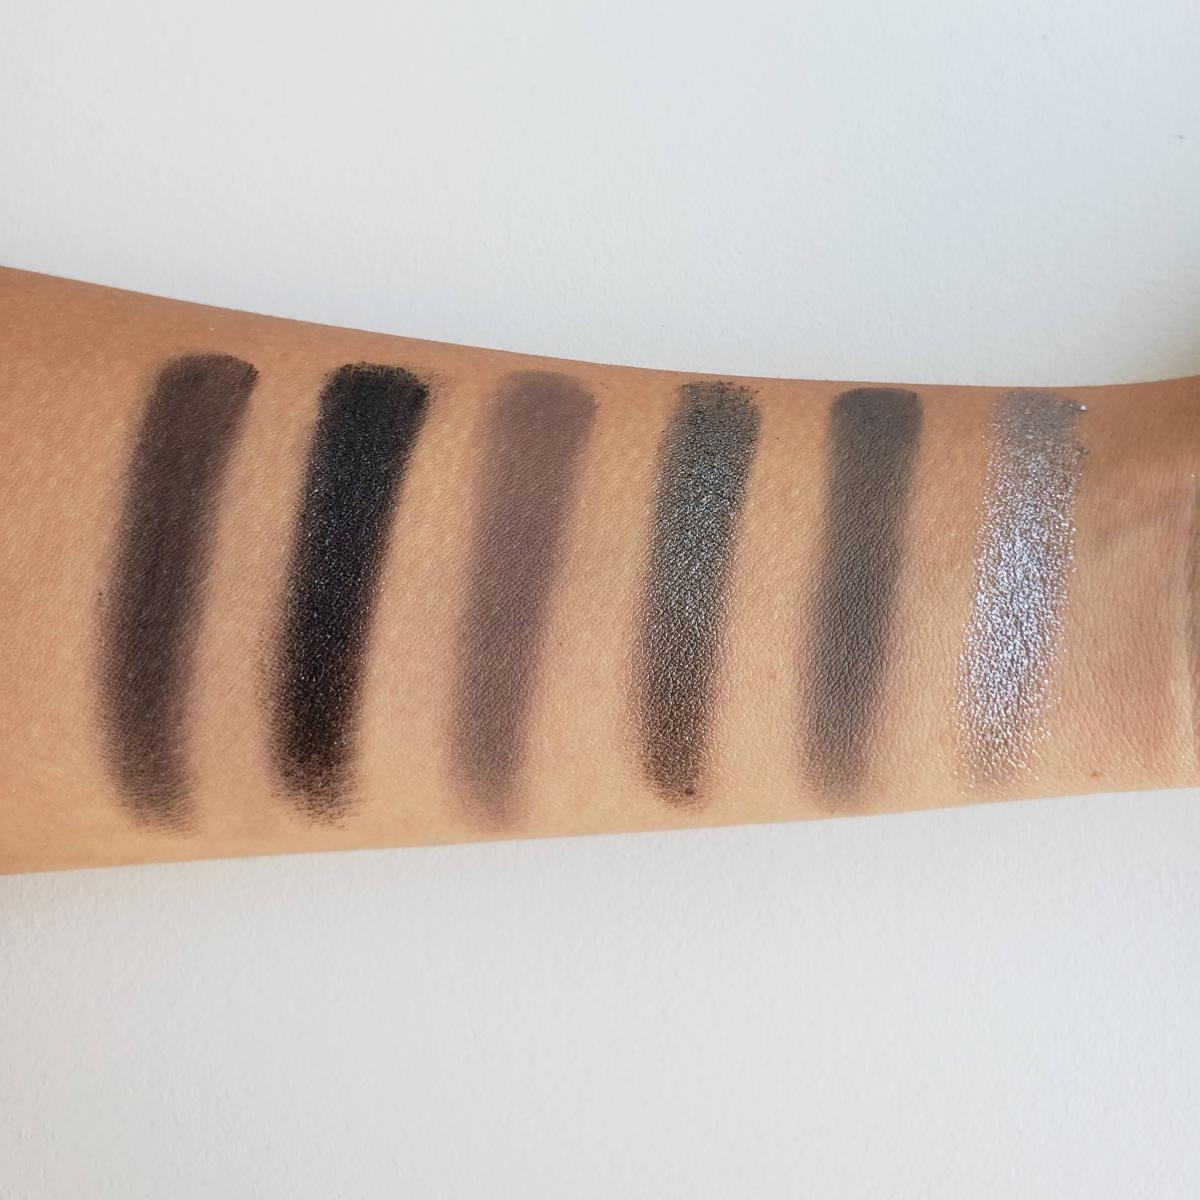 Jeffree Star Cosmetics Cremated Eyeshadow Palette Review Swatches 1